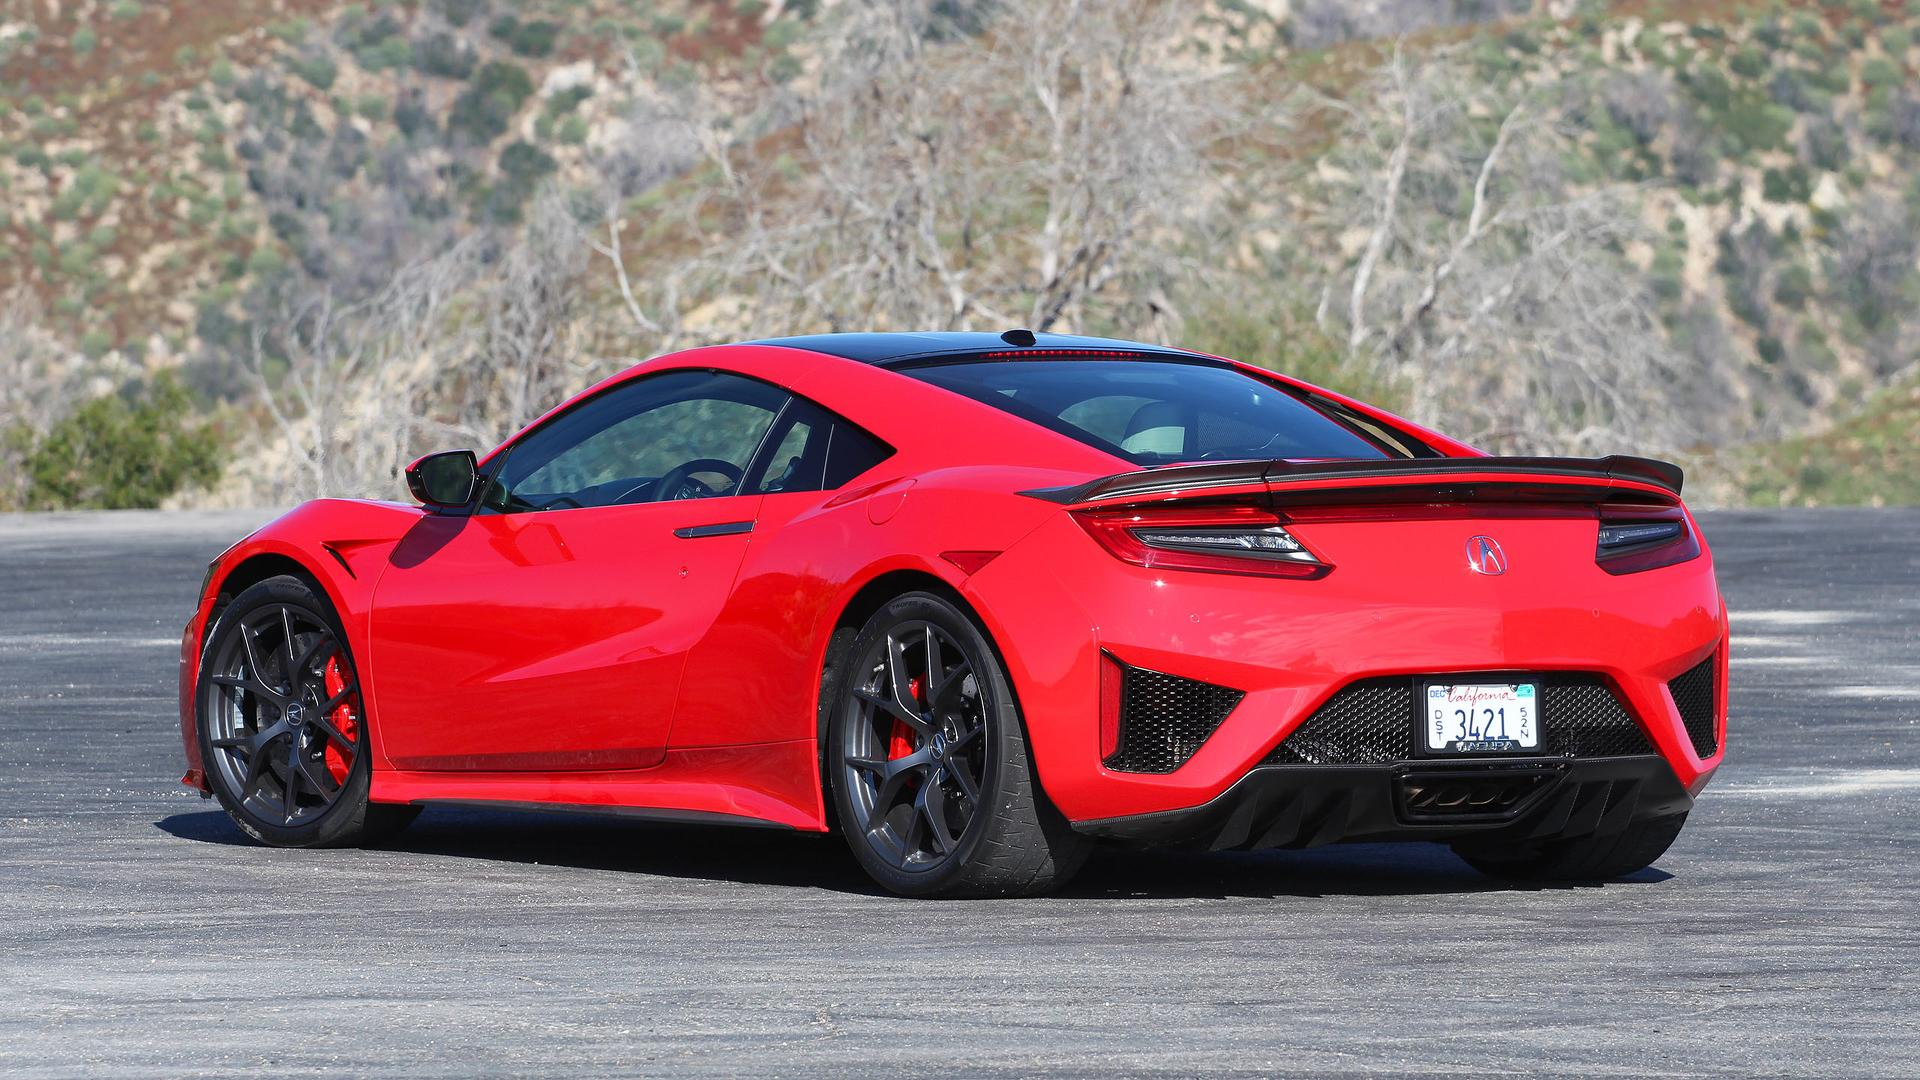 2017 Acura Nsx Review Every Day And Twice On Sundays